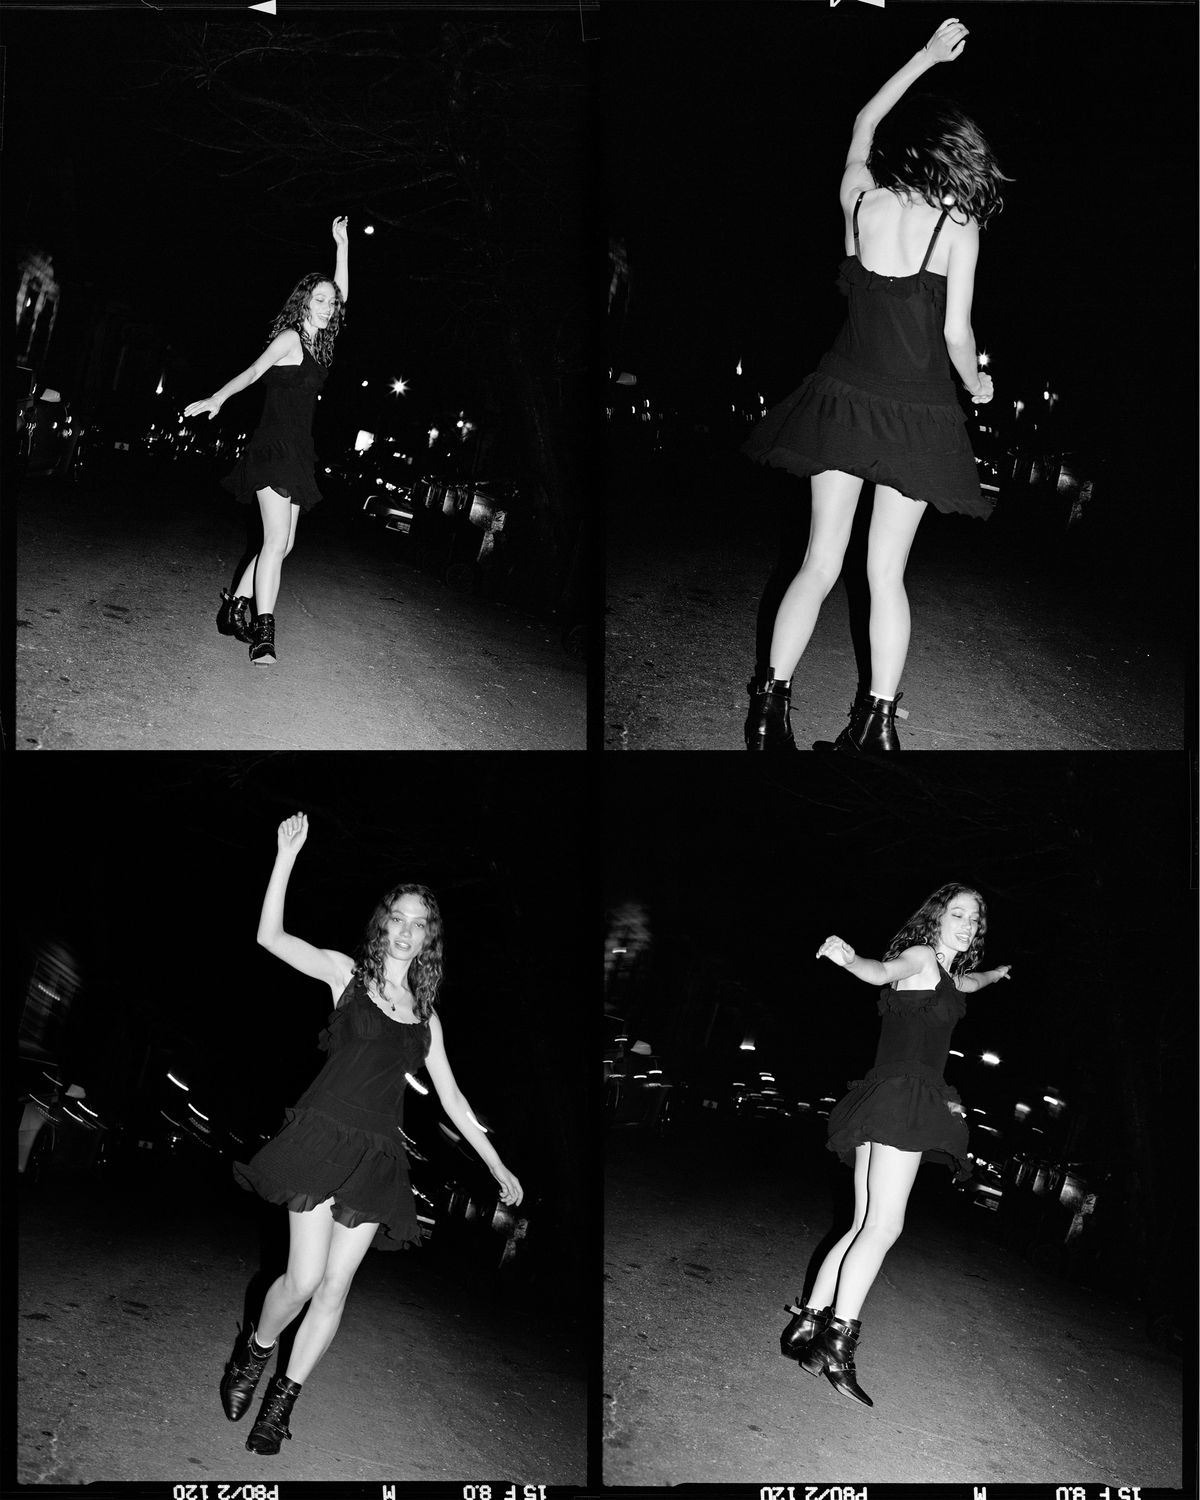 A black-and-white photograph of a young woman dancing in the streets at night, wearing a short black dress from our latest summer collection.